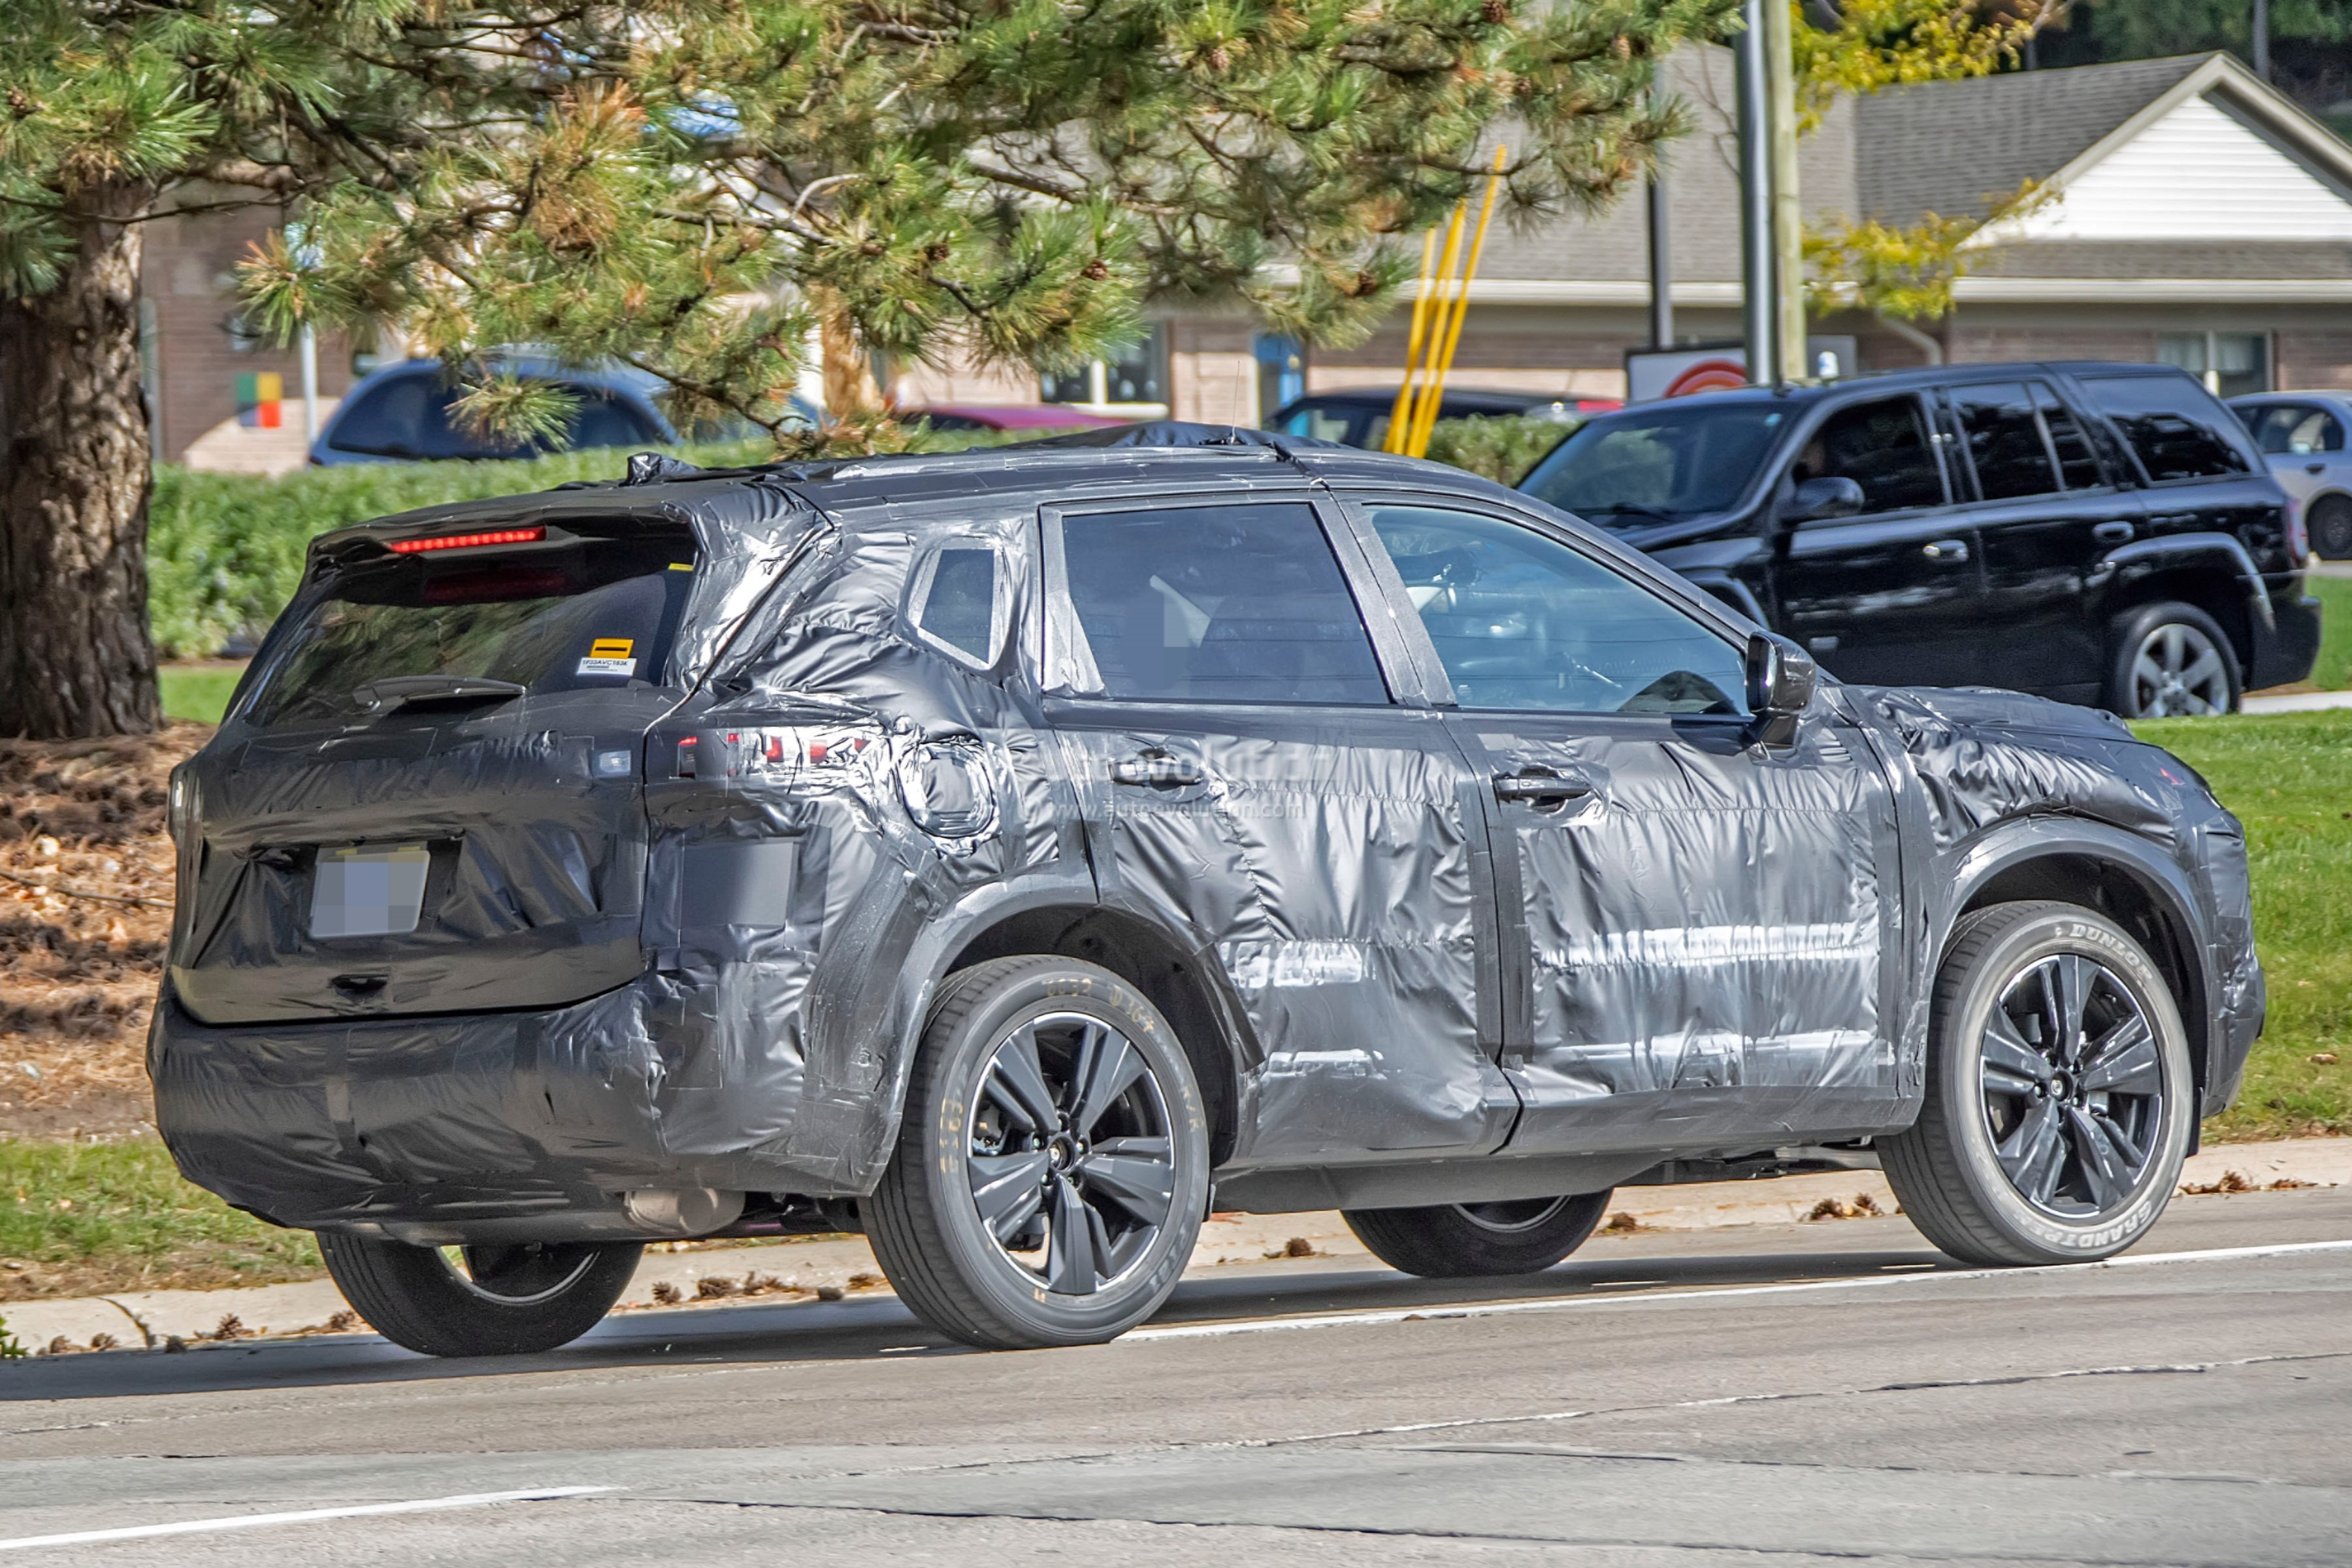 2021 Nissan Rogue (X-Trail) Spied Inside & Out, Juke ...